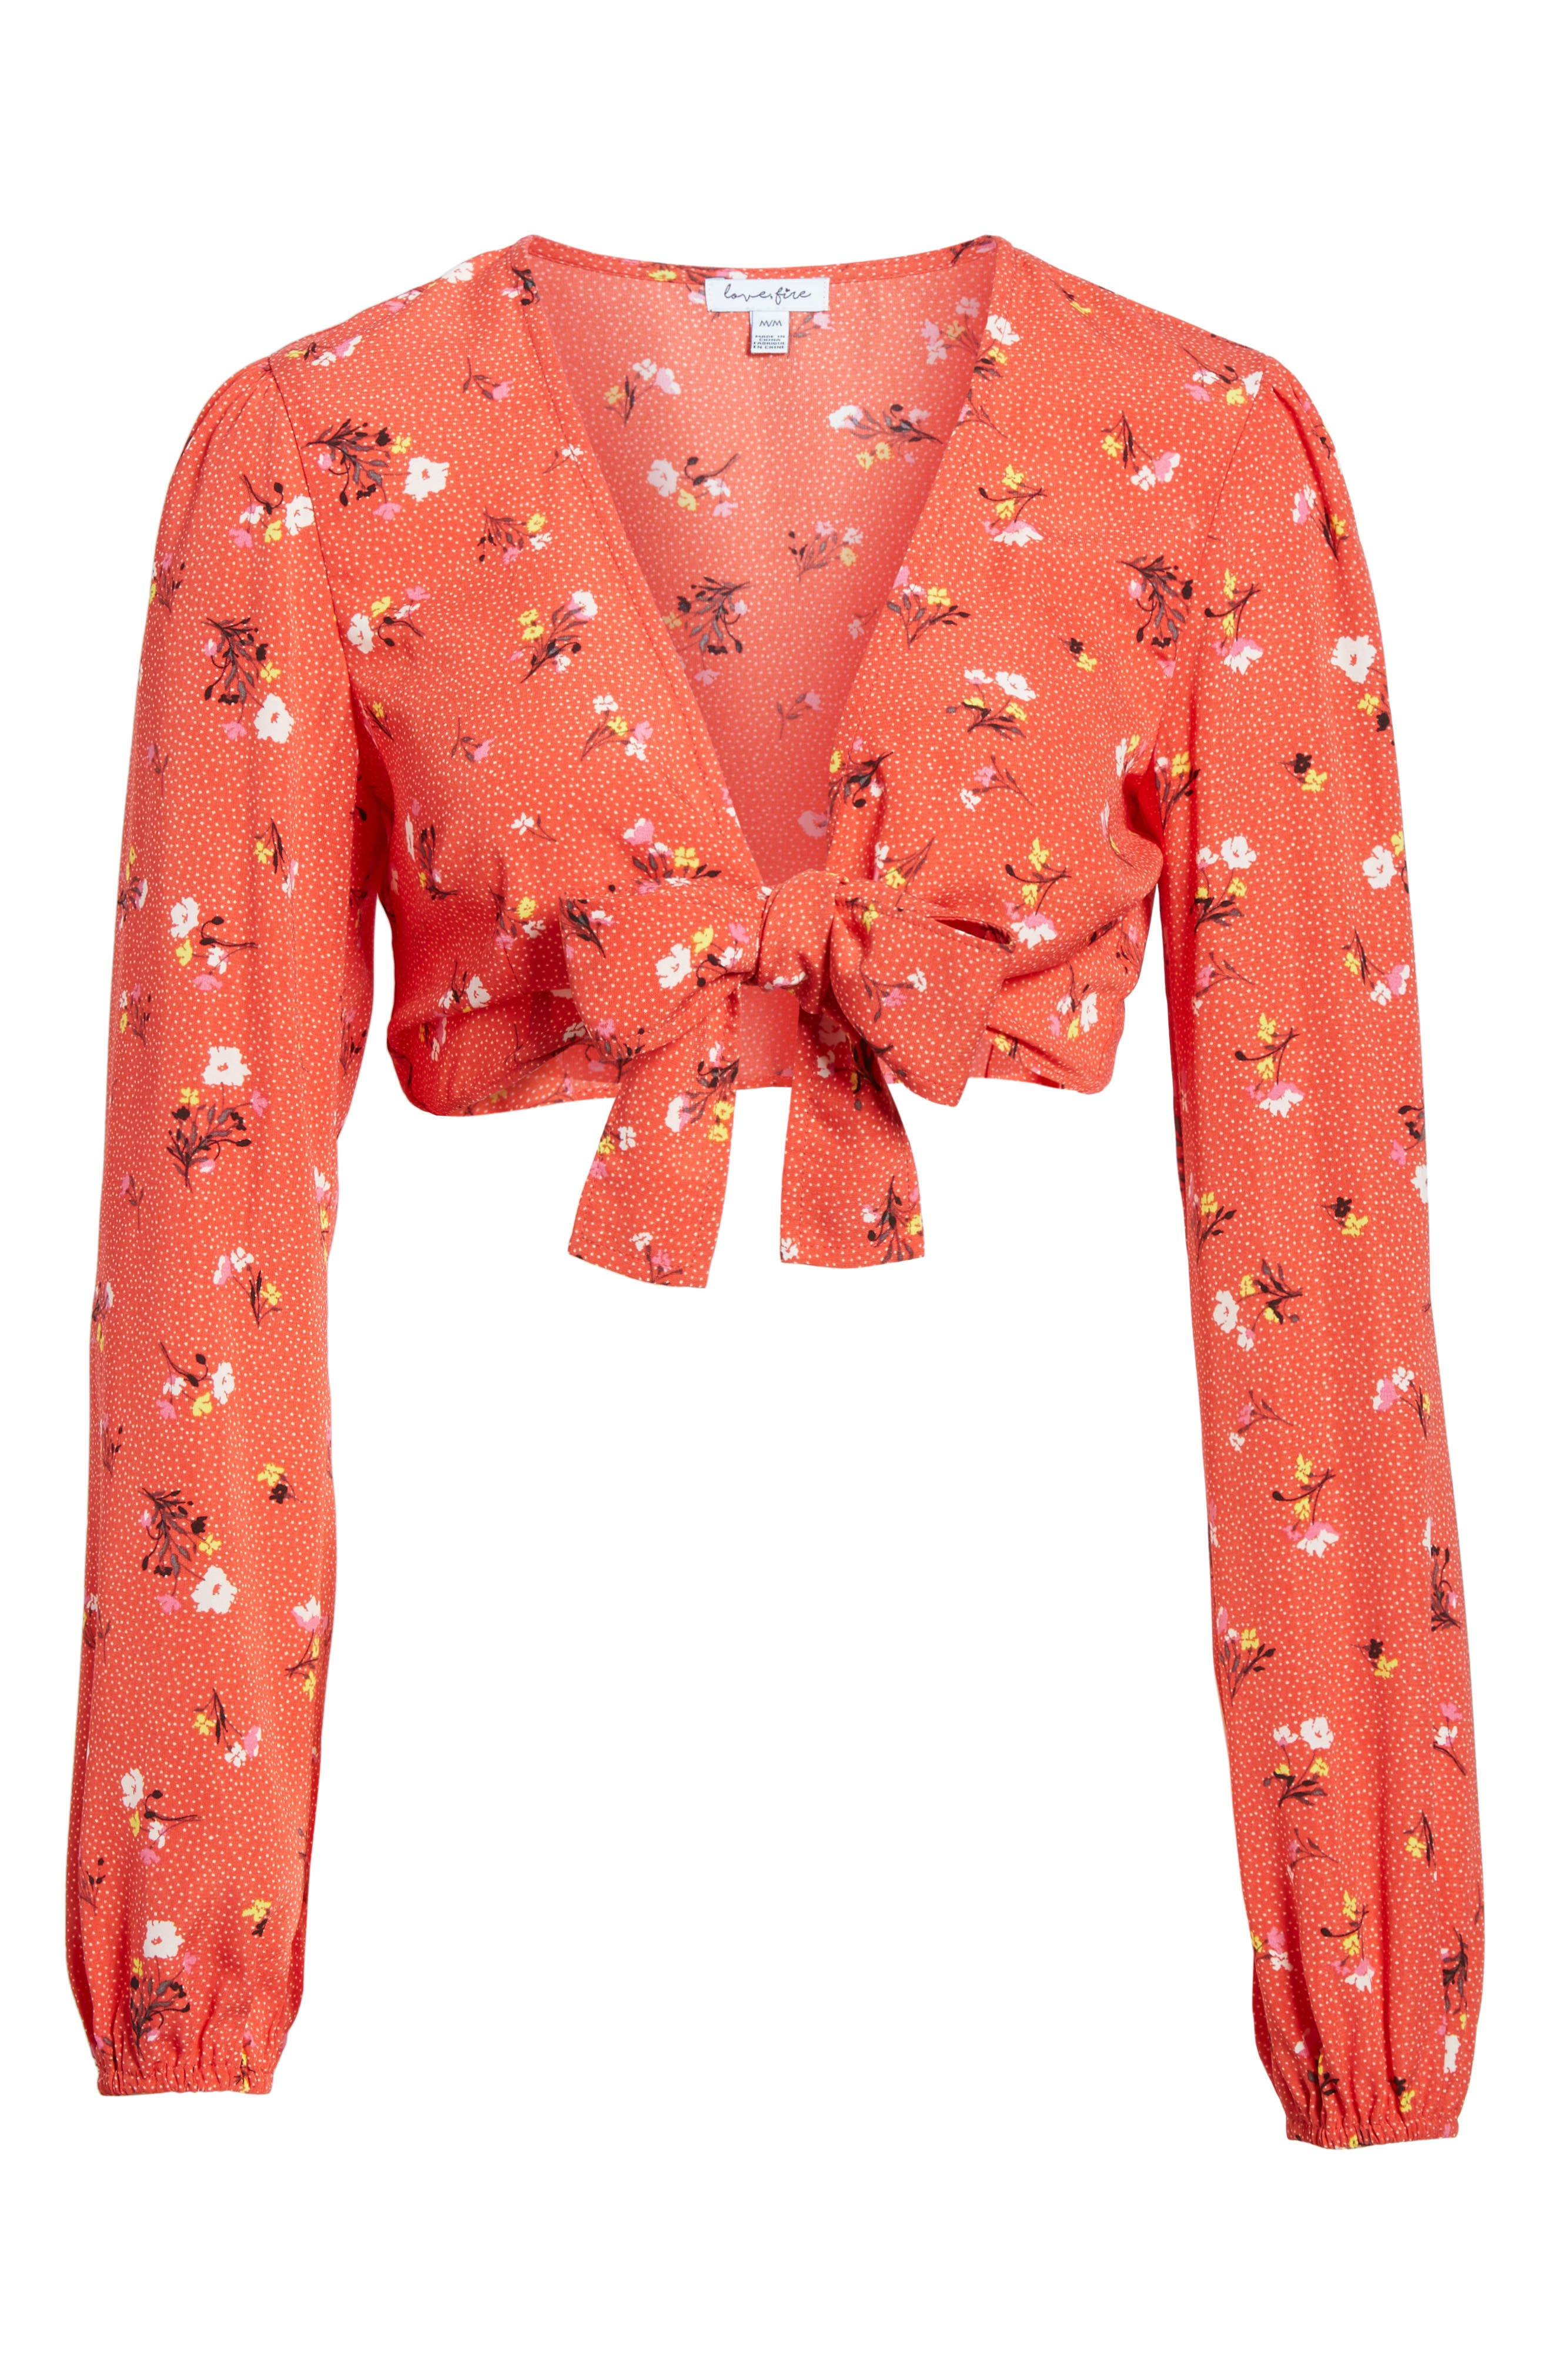 Tie Front Crop Top,                             Alternate thumbnail 6, color,                             Red Dot Floral